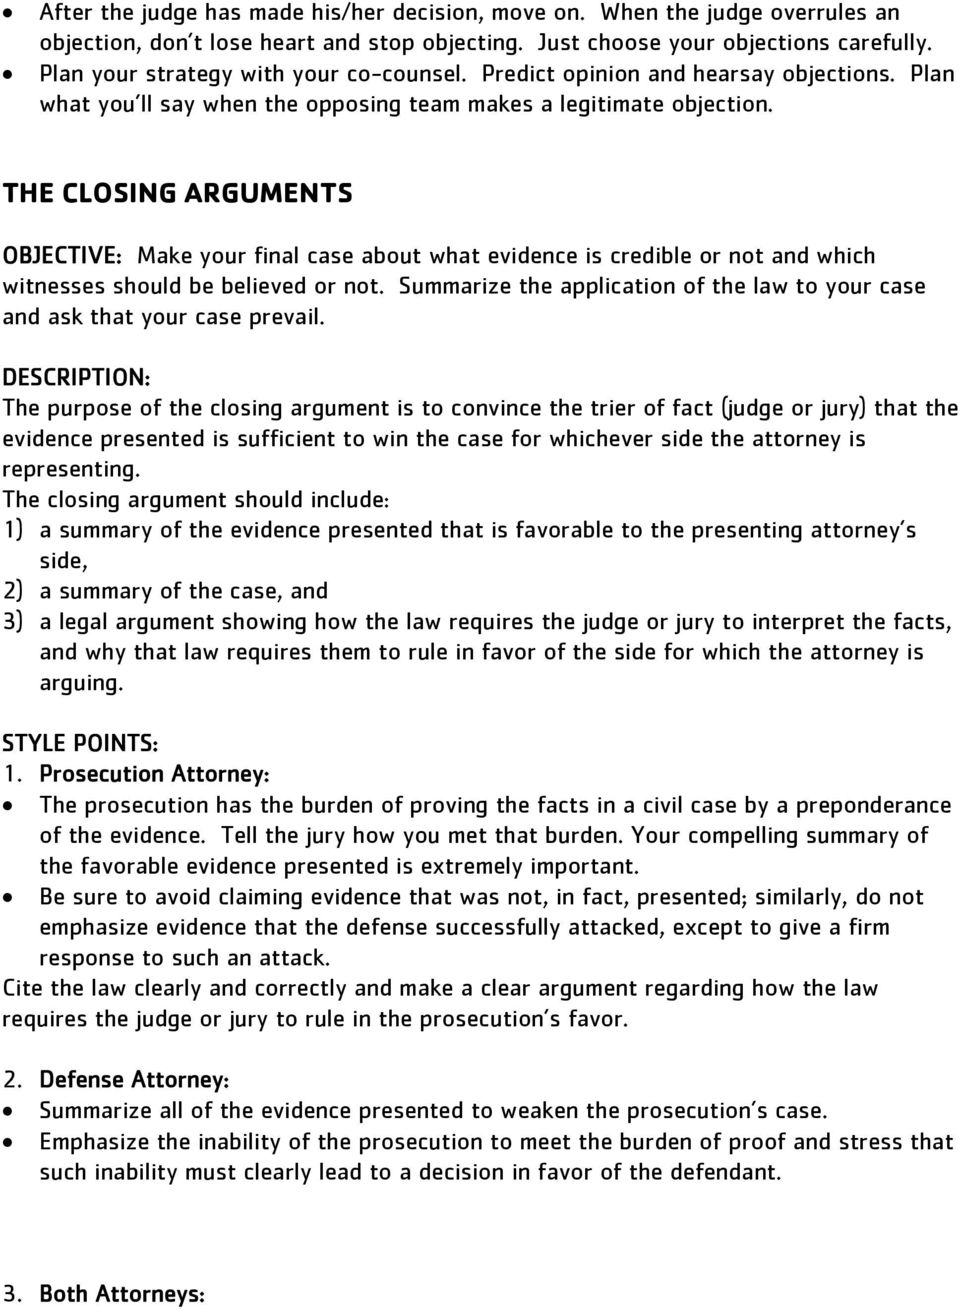 THE CLOSING ARGUMENTS OBJECTIVE: Make your final case about what evidence is credible or not and which witnesses should be believed or not.